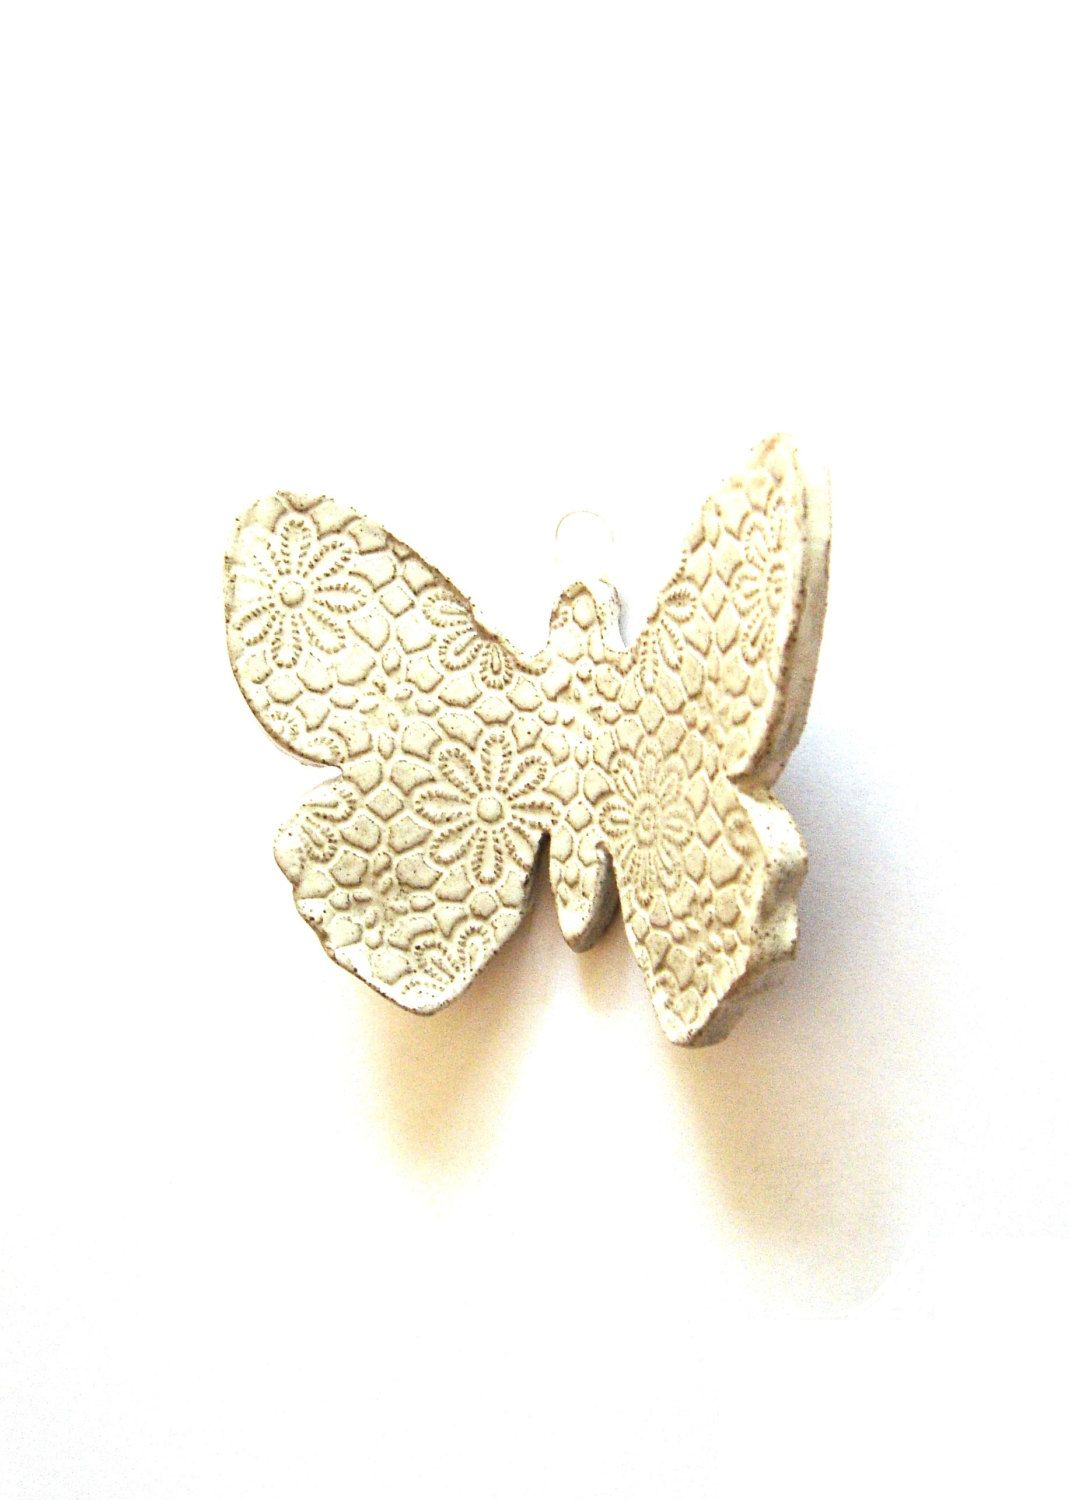 New to vibart on etsy d butterfly wall art butterfly decor white